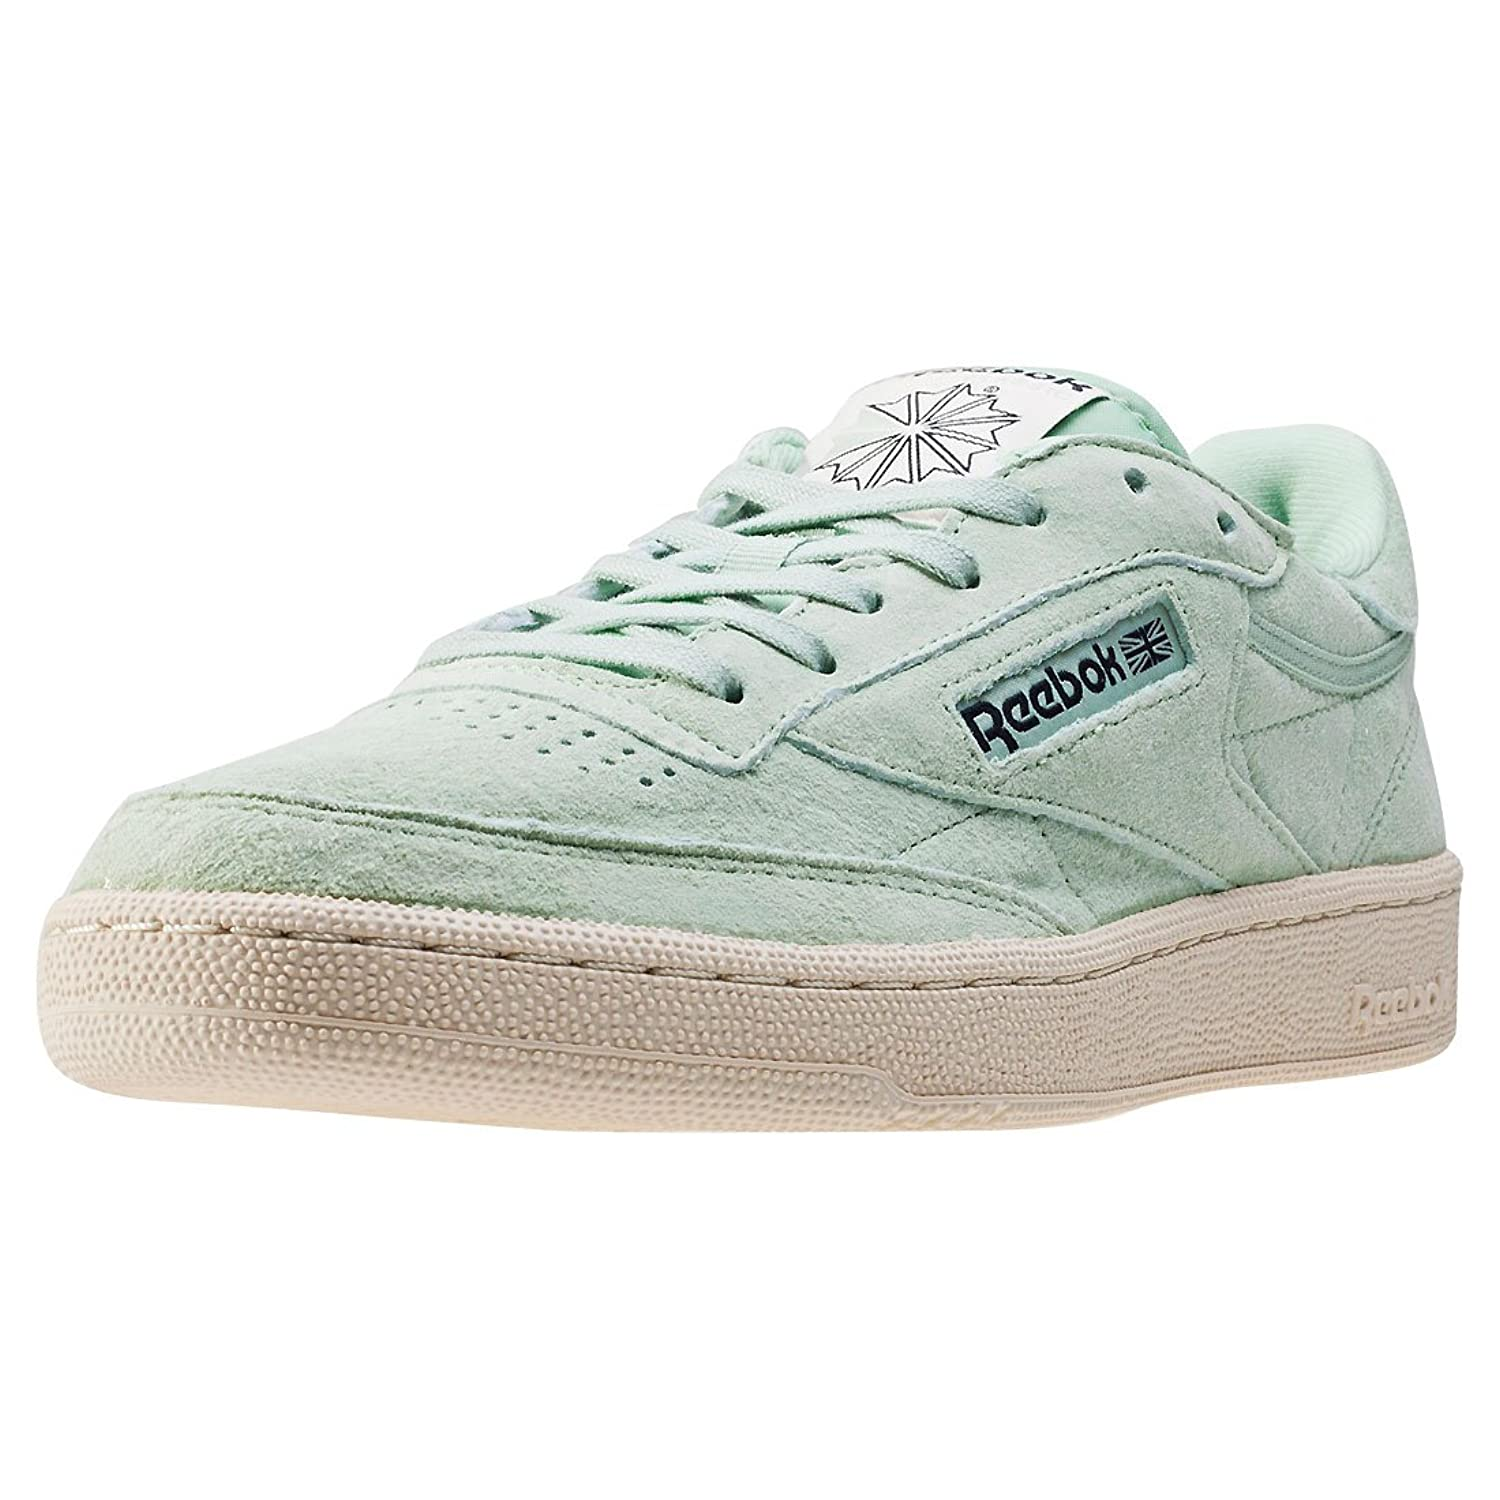 REEBOK CLASSIC CLUB C 85 Leather Pastels Chaussures Baskets